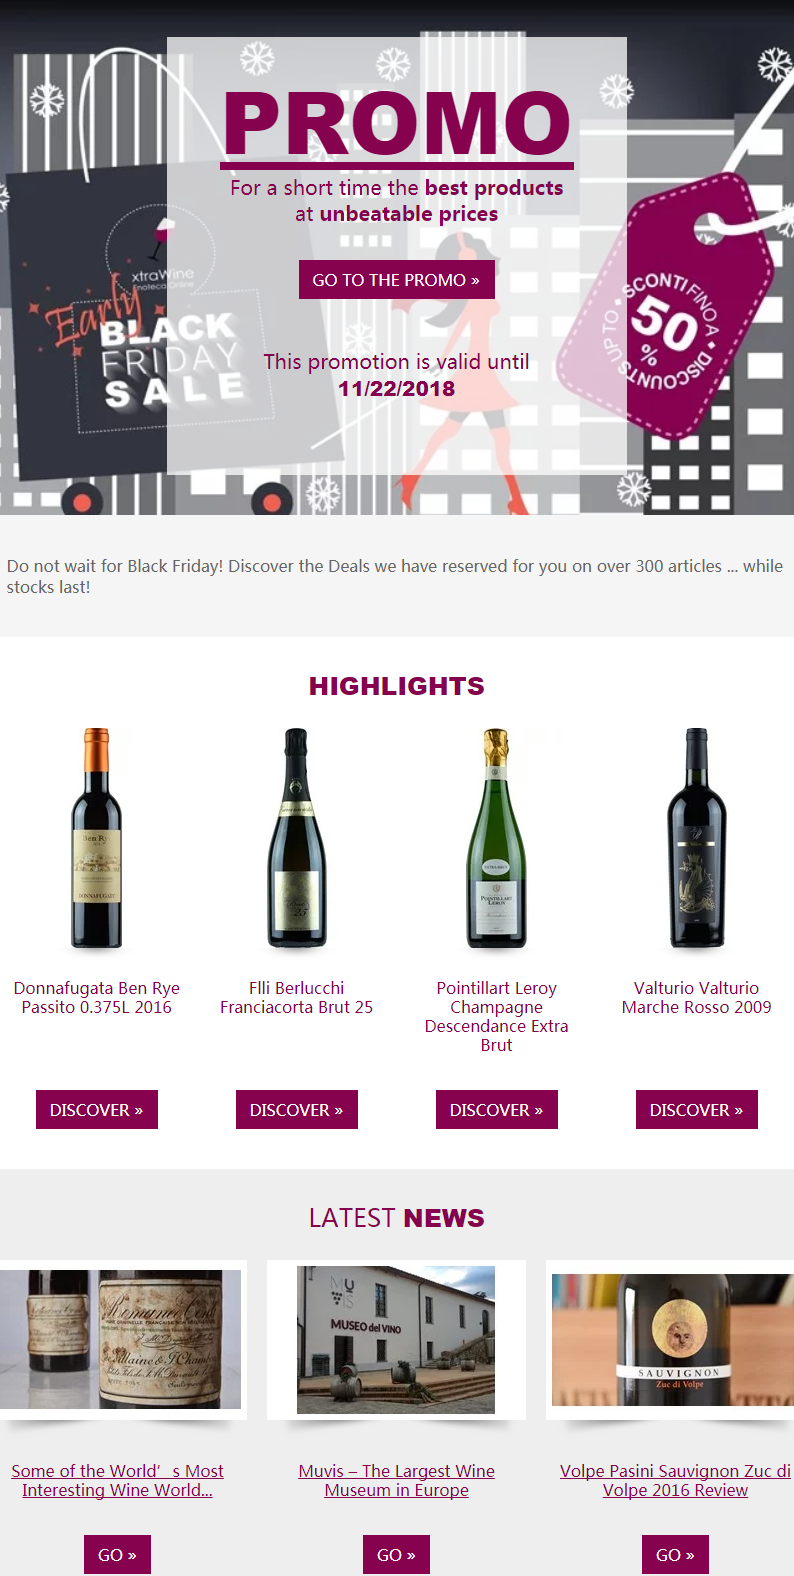 Do not wait for Black Friday! Discover the deals XtraWine has reserved for you on over 300 articles ...